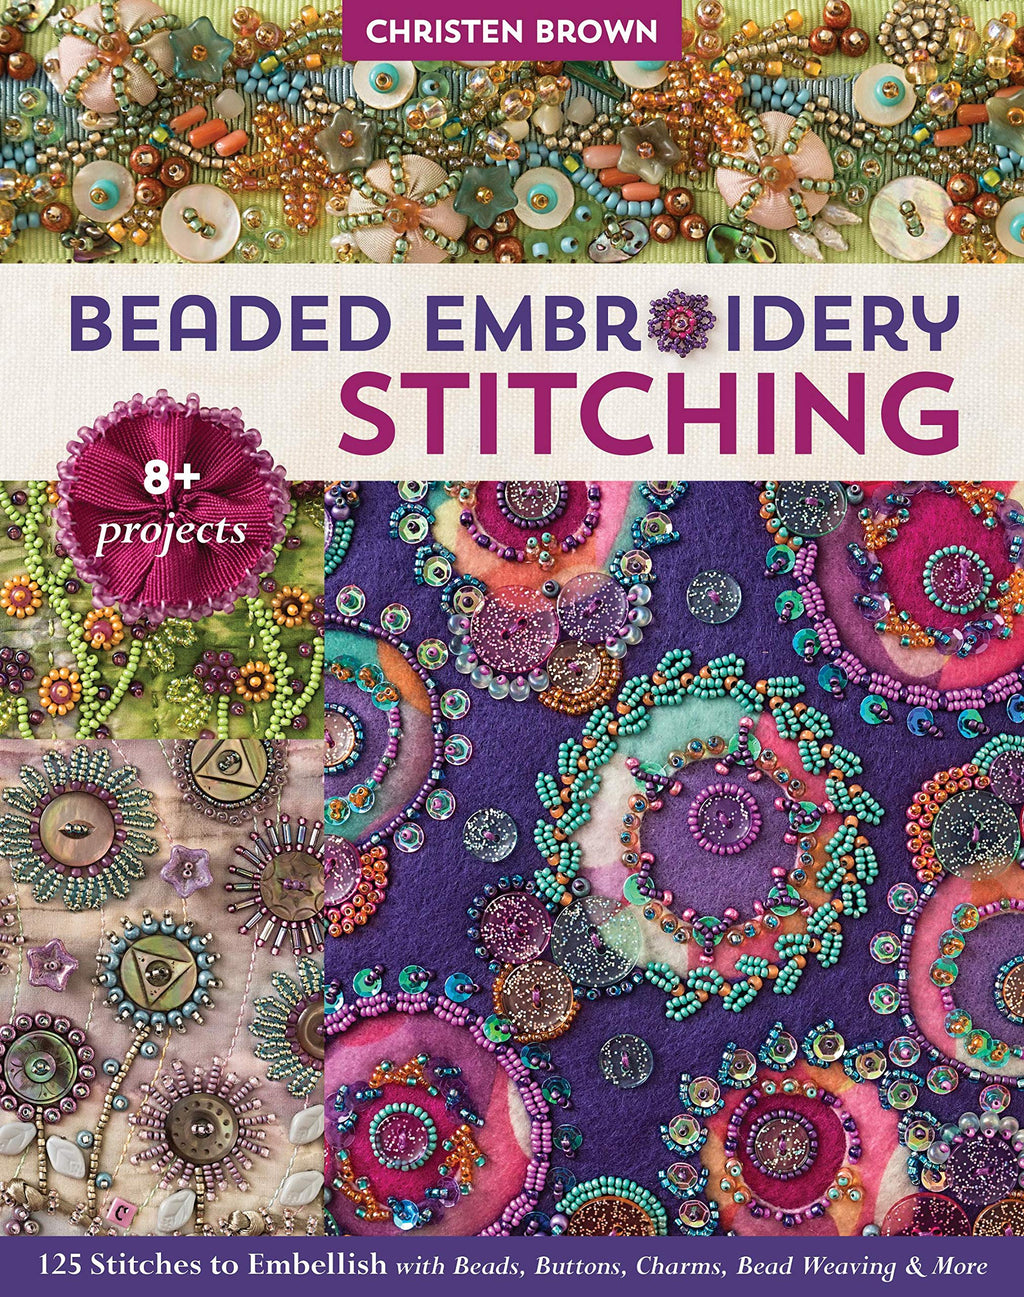 Beaded Embroidery Stitching Book - Trapunto